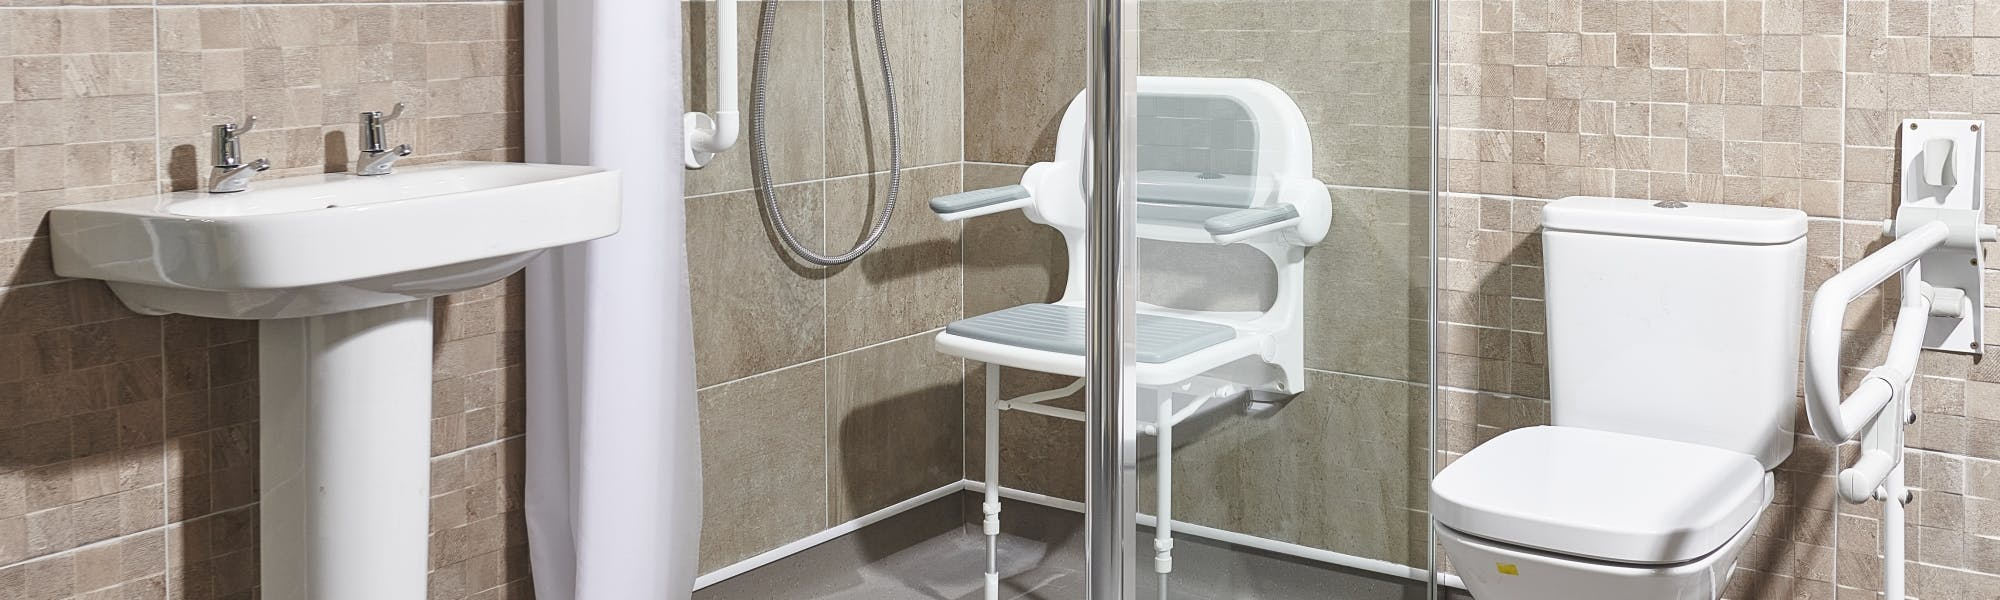 Accessible Bathroom Showroom | Harrogate | More Ability